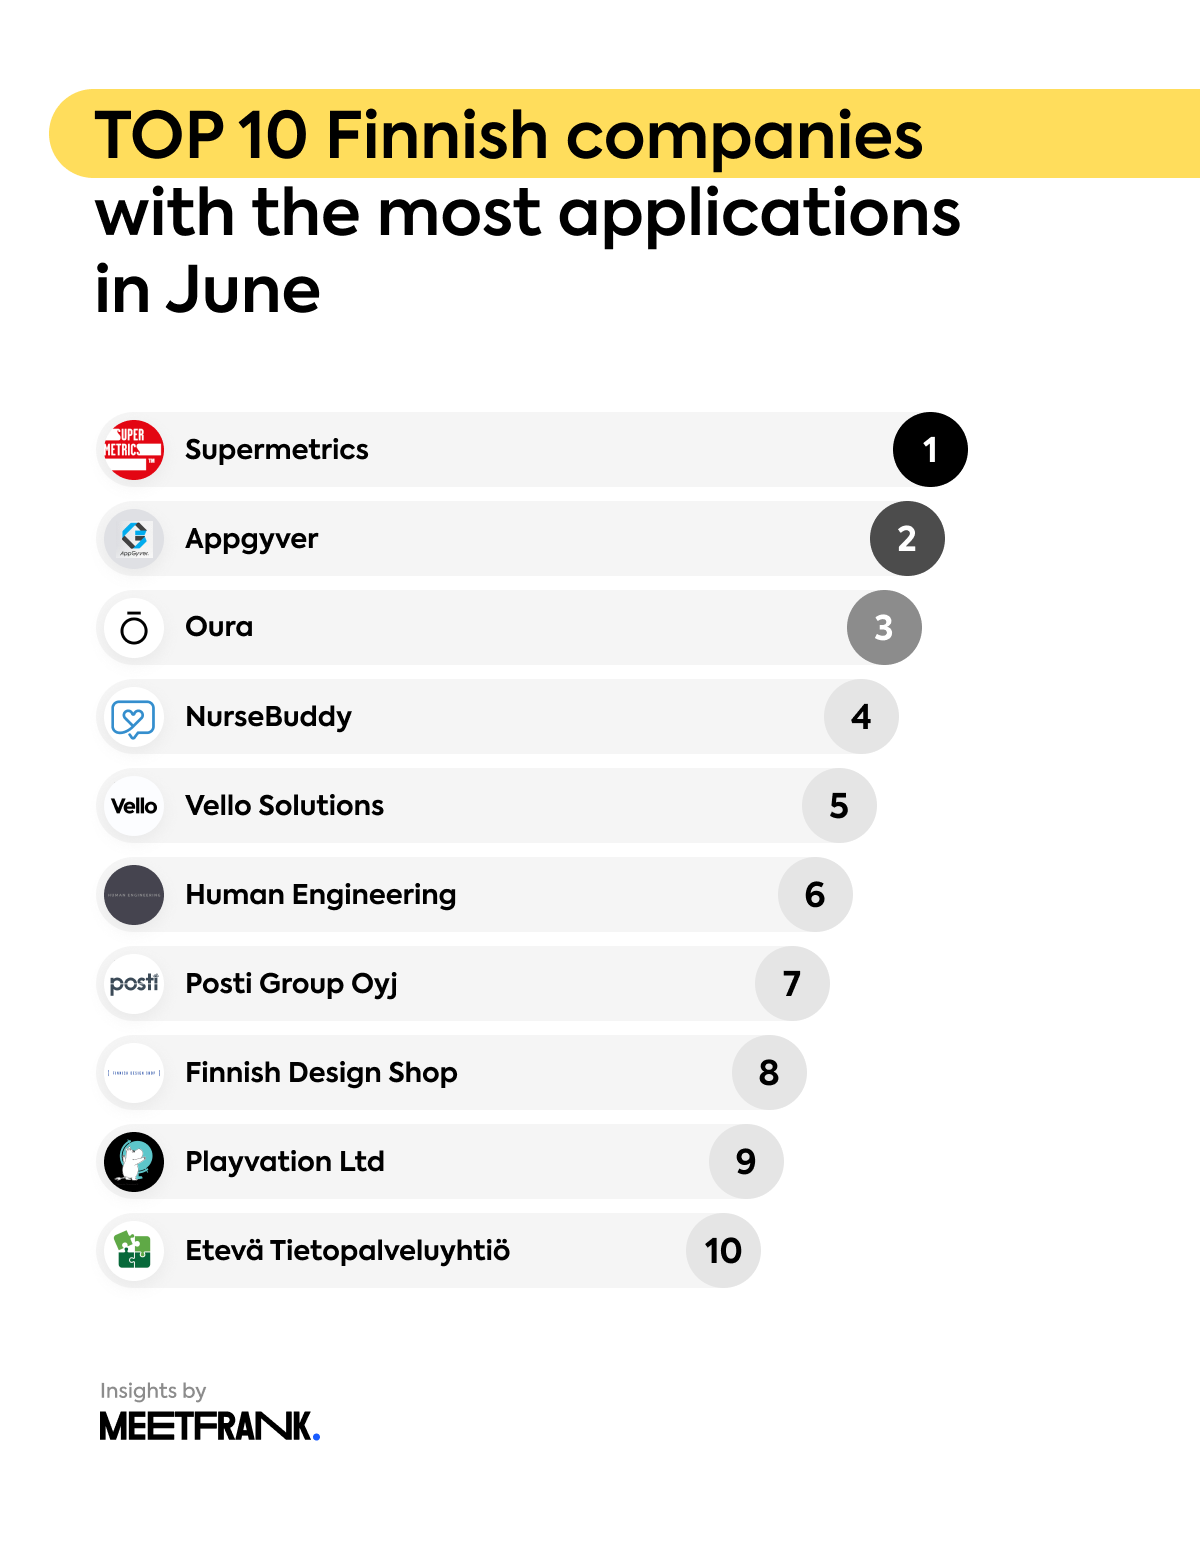 Top 10 Finnish companies with the most applications in June